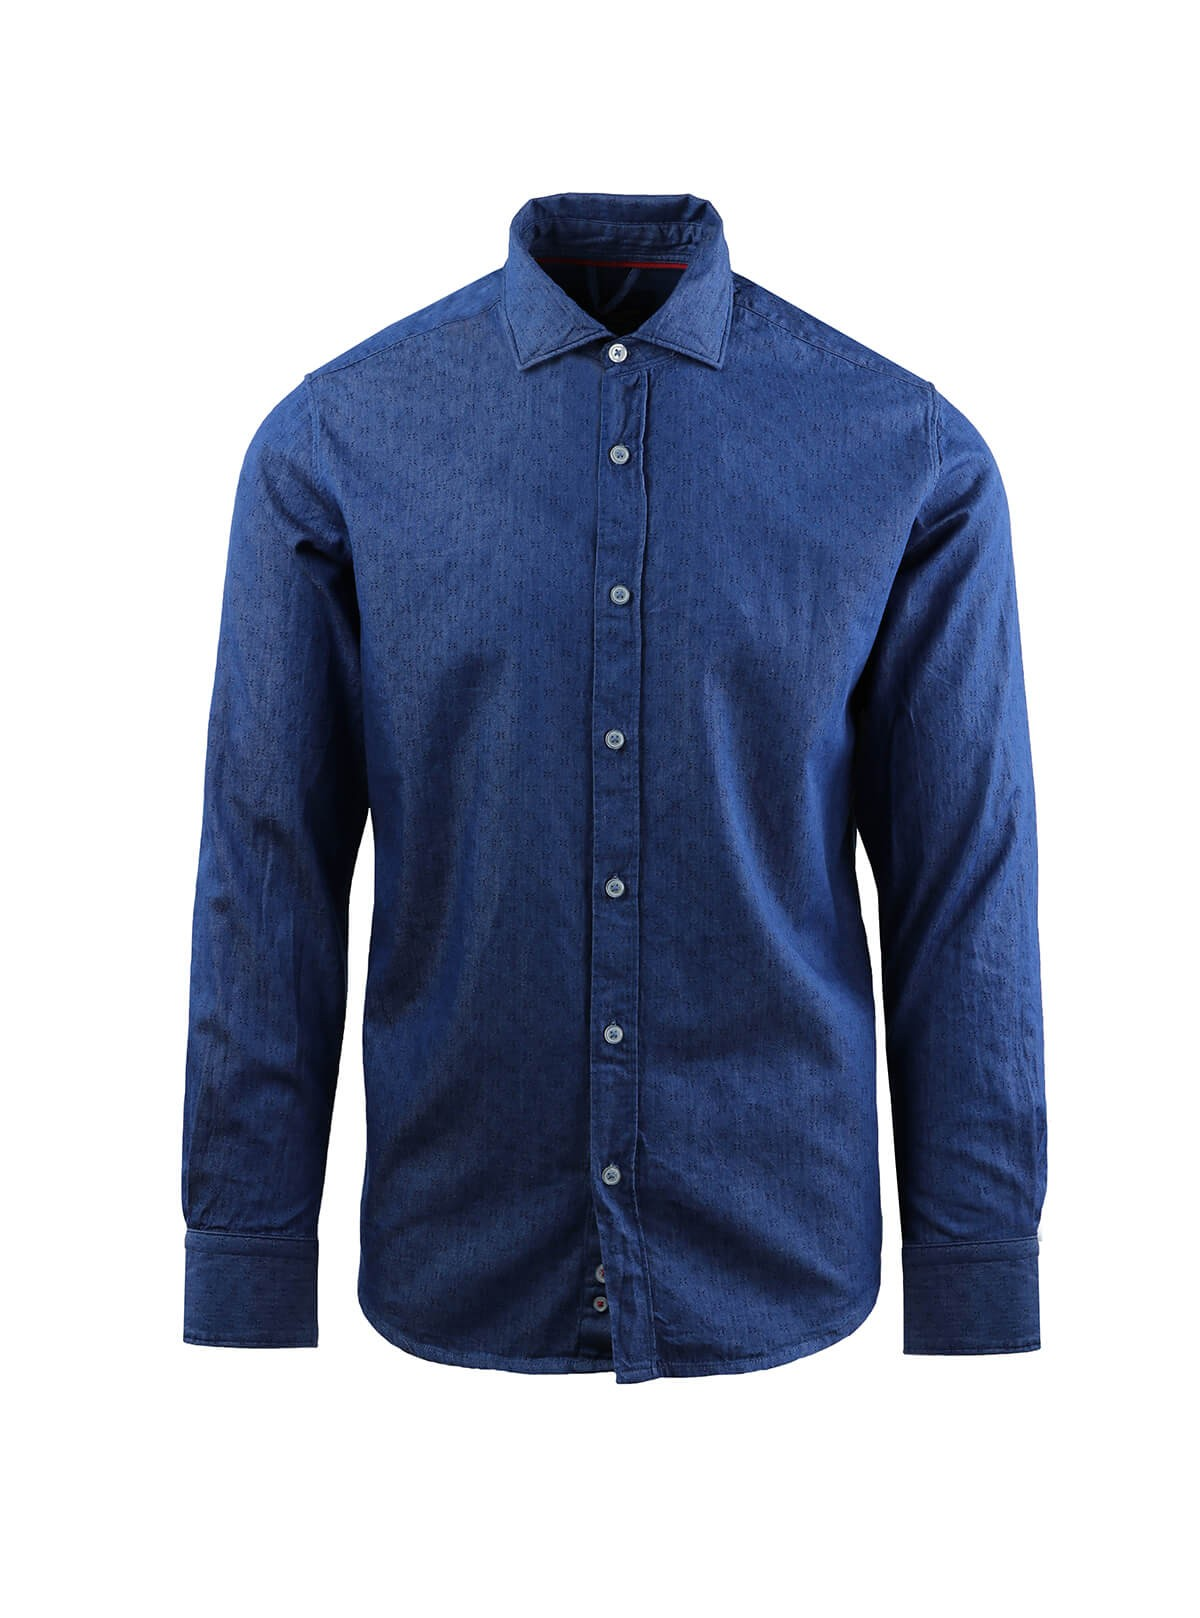 new product 262b1 680b7 CAMICIA DI JEANS STAMPATA - Camicie - Outlet